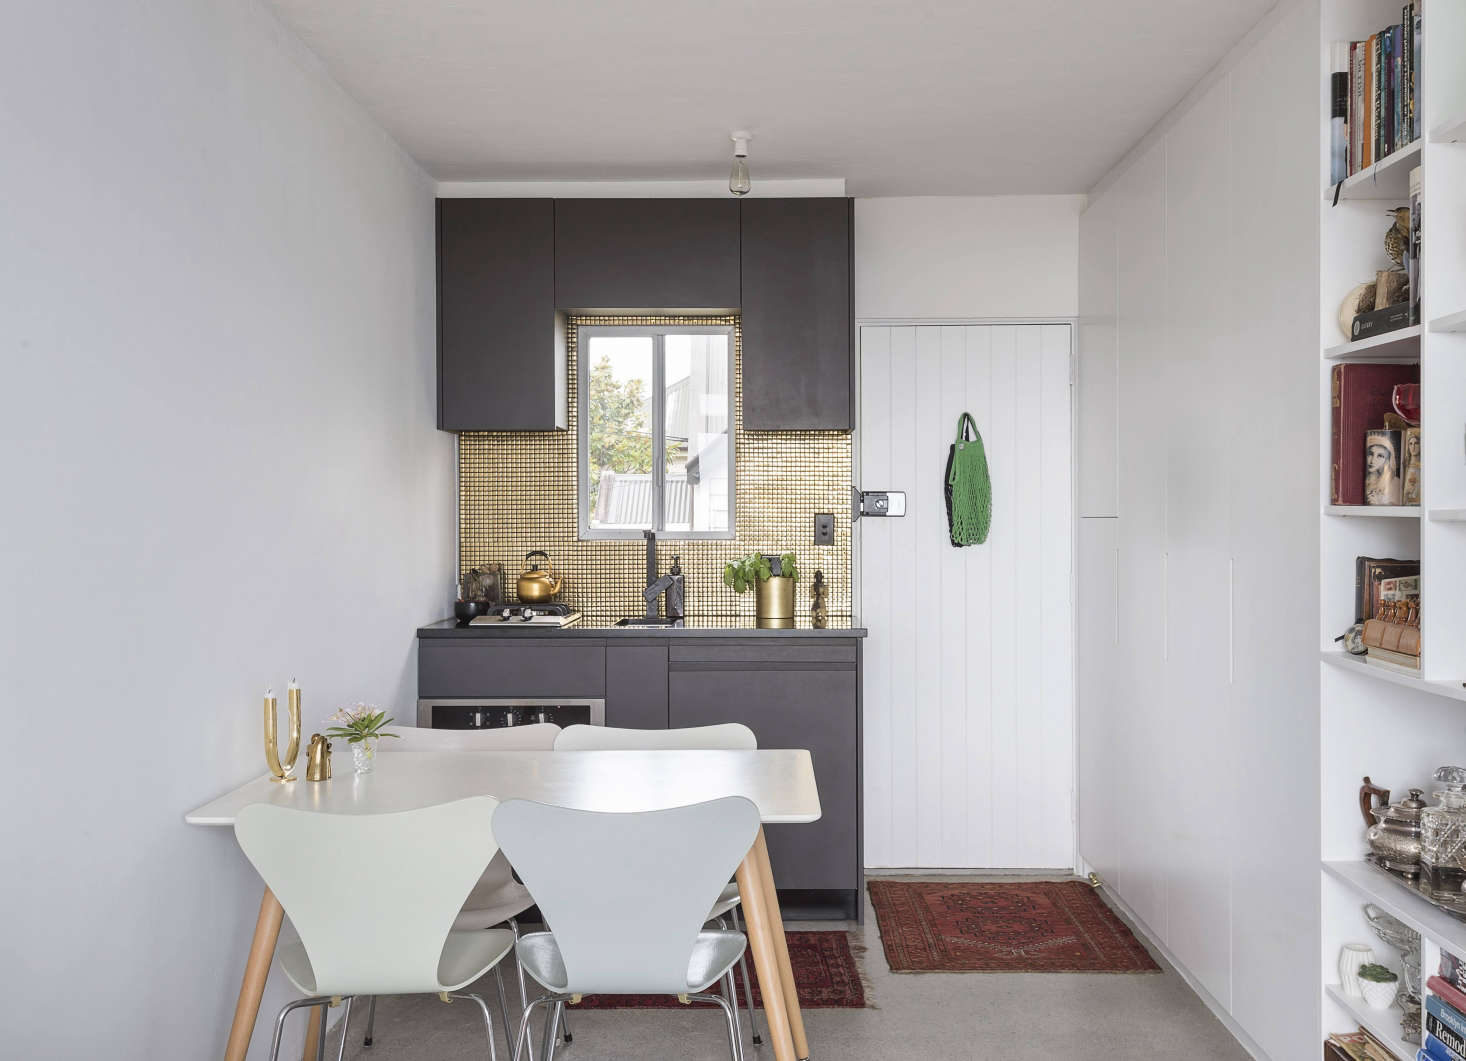 Spath Demo Ed The Larger, U Shaped Kitchen In This Auckland Studio Apartment